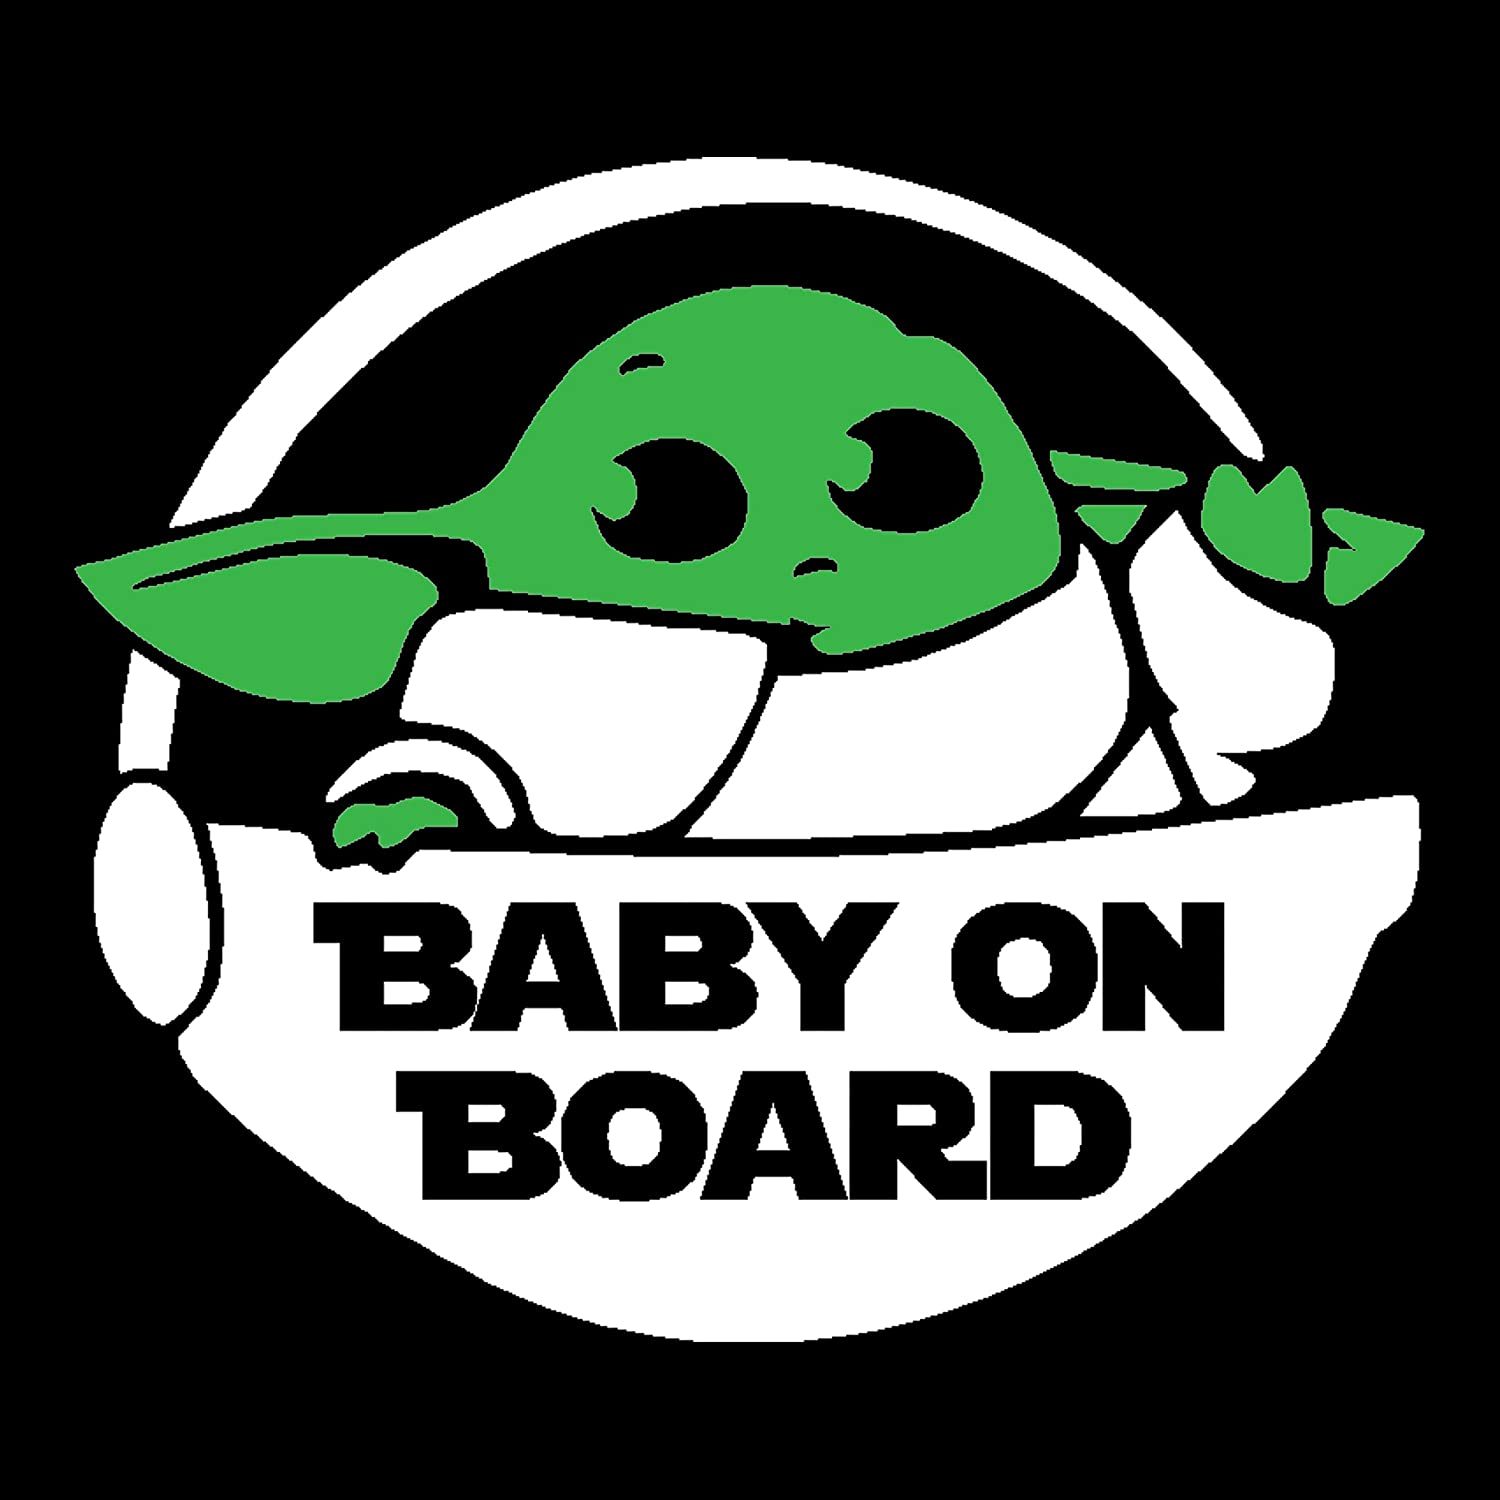 and Designs Please Message Us Custom Colors Sizes Baby On Board Decal H 5.5 by L 5.5 Inches, White